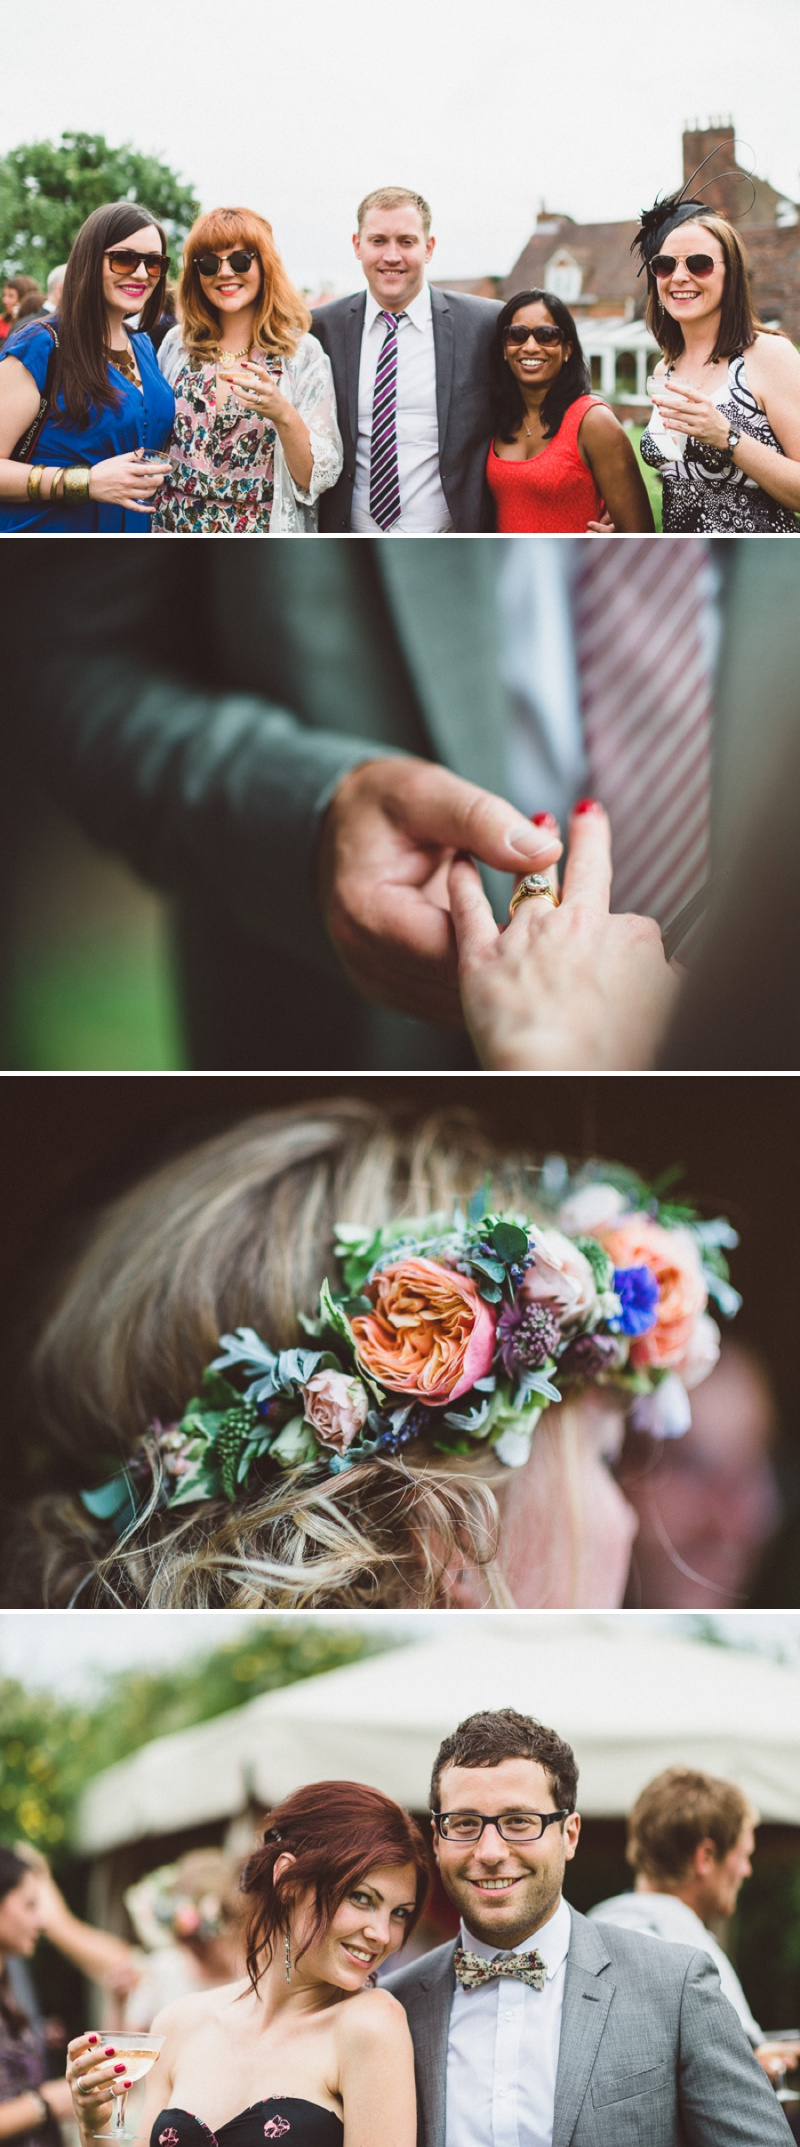 A Beautiful Bohemian Back Garden English Wedding With A Silk Charlie Brear Dress With Lace Cap Sleeves And Flower Crowns From Rhys Parker Photography._0013